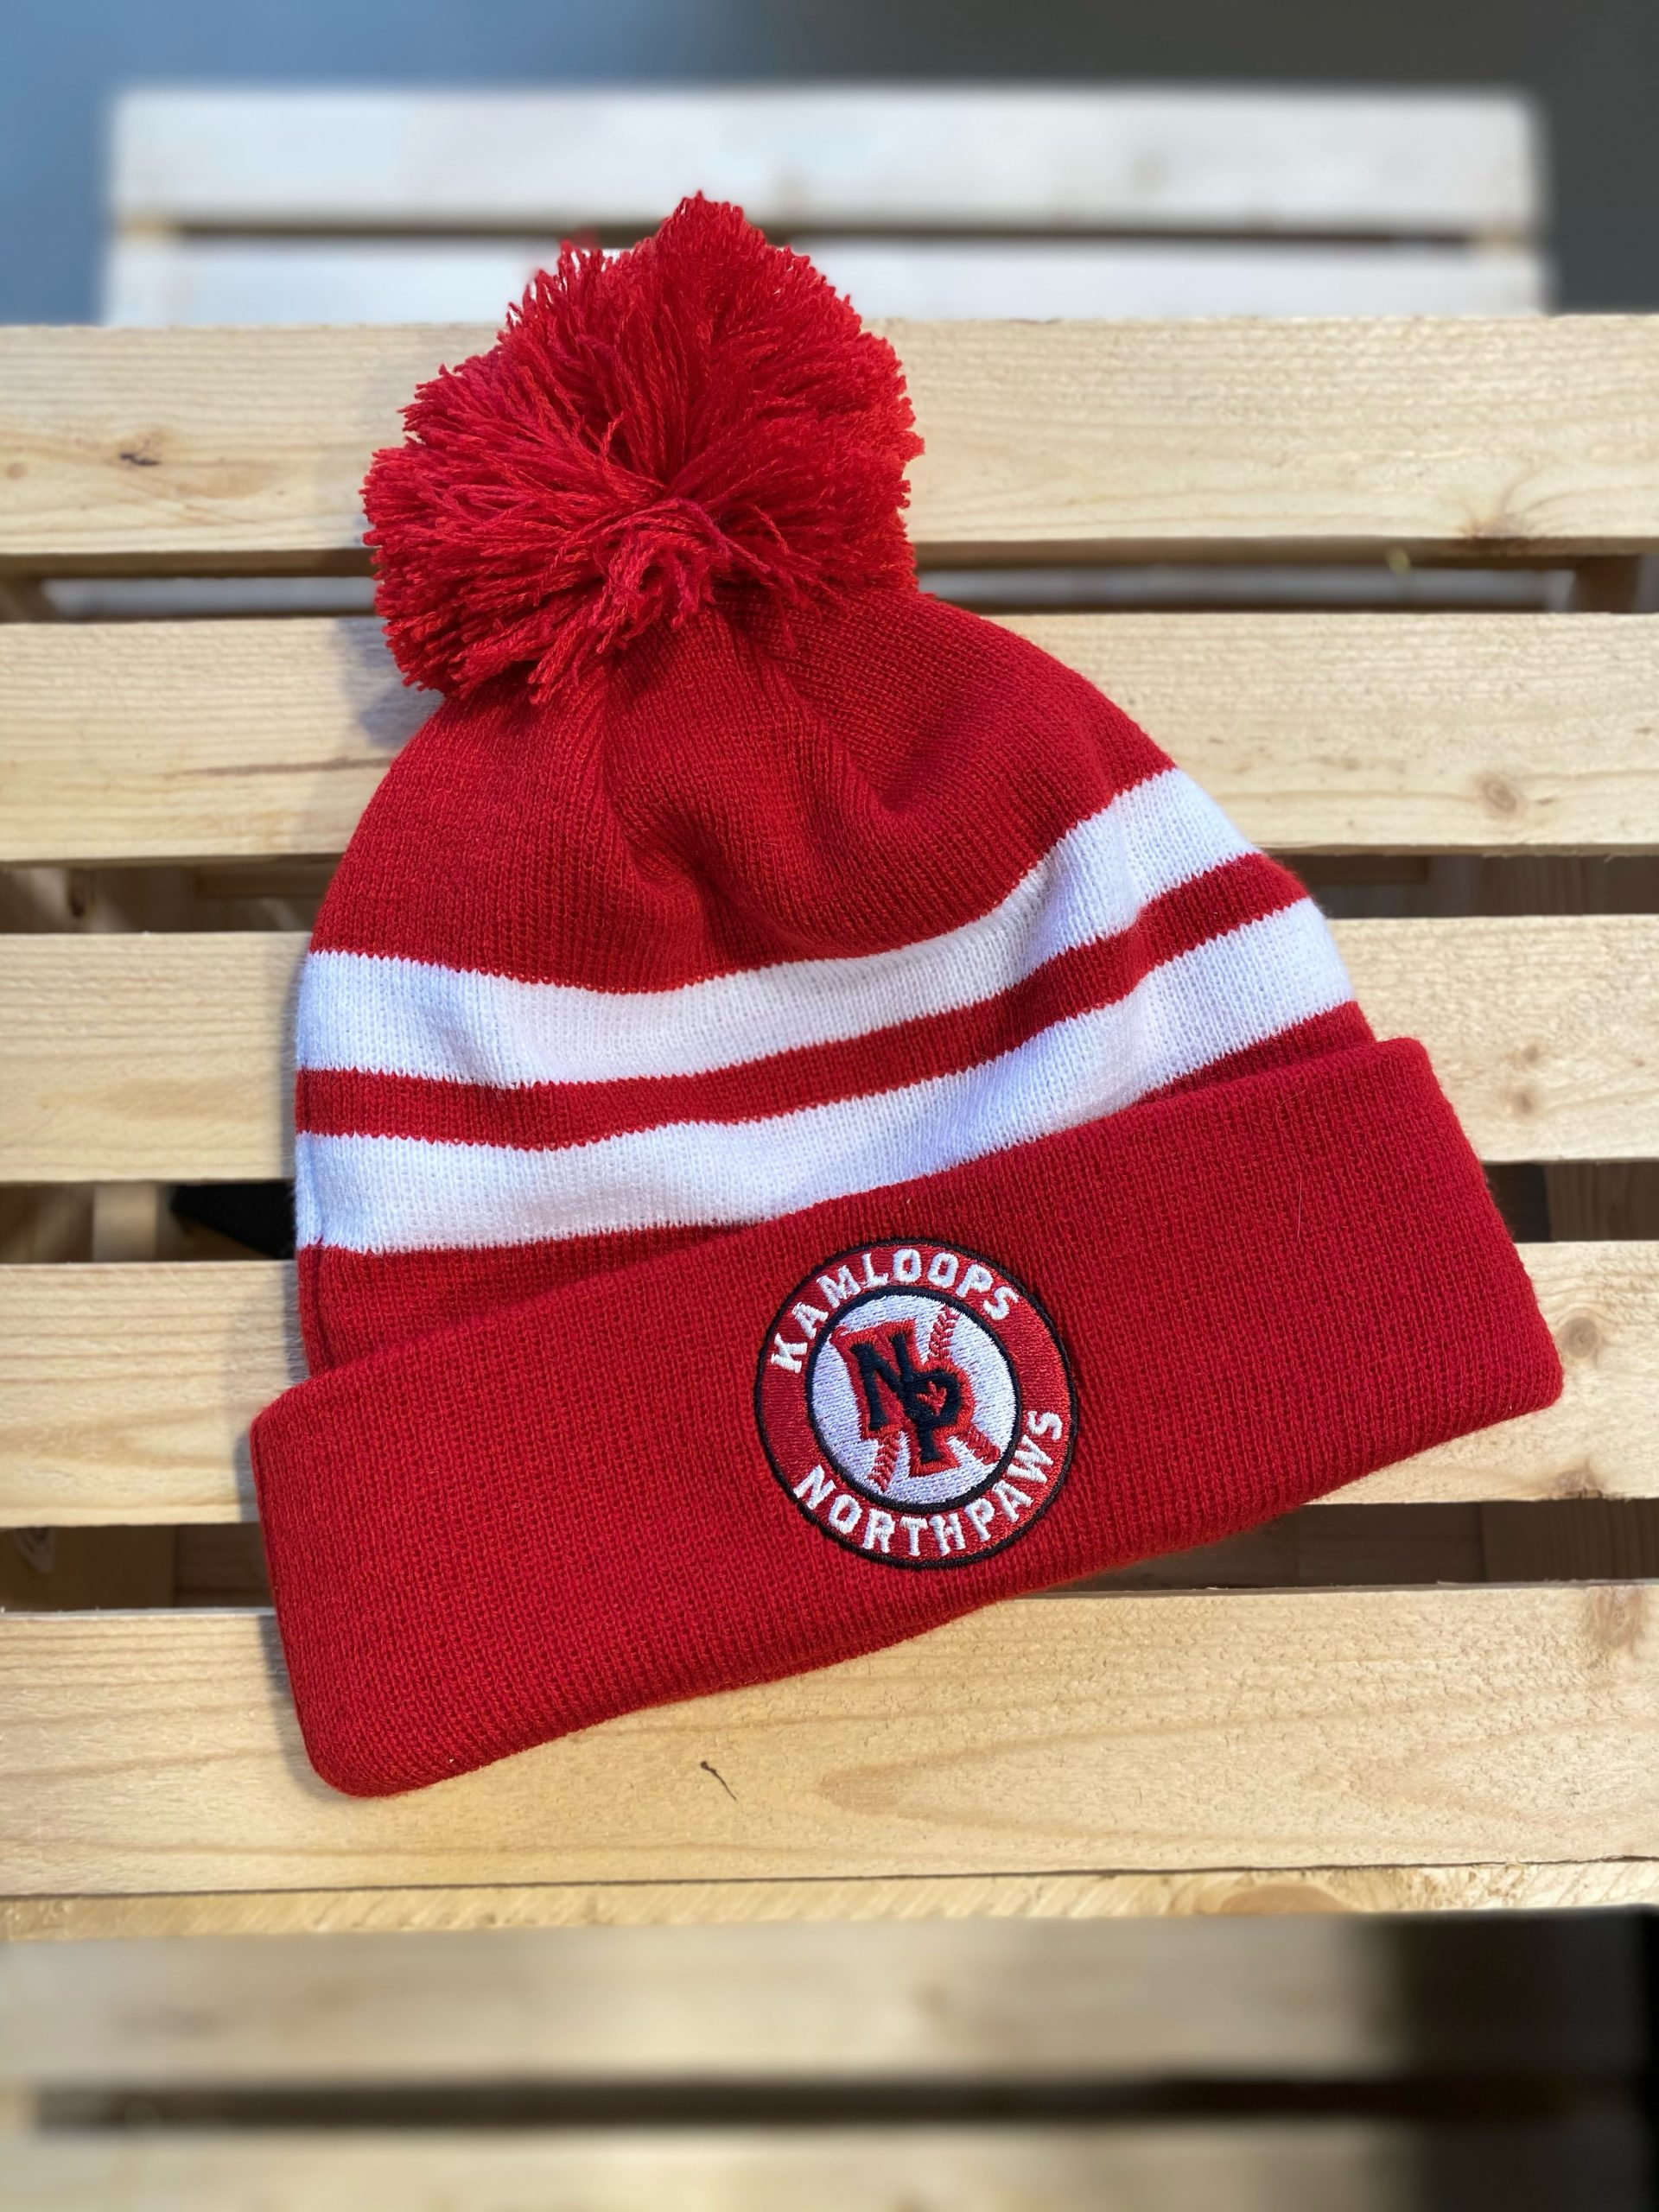 NorthPaws Red Toque